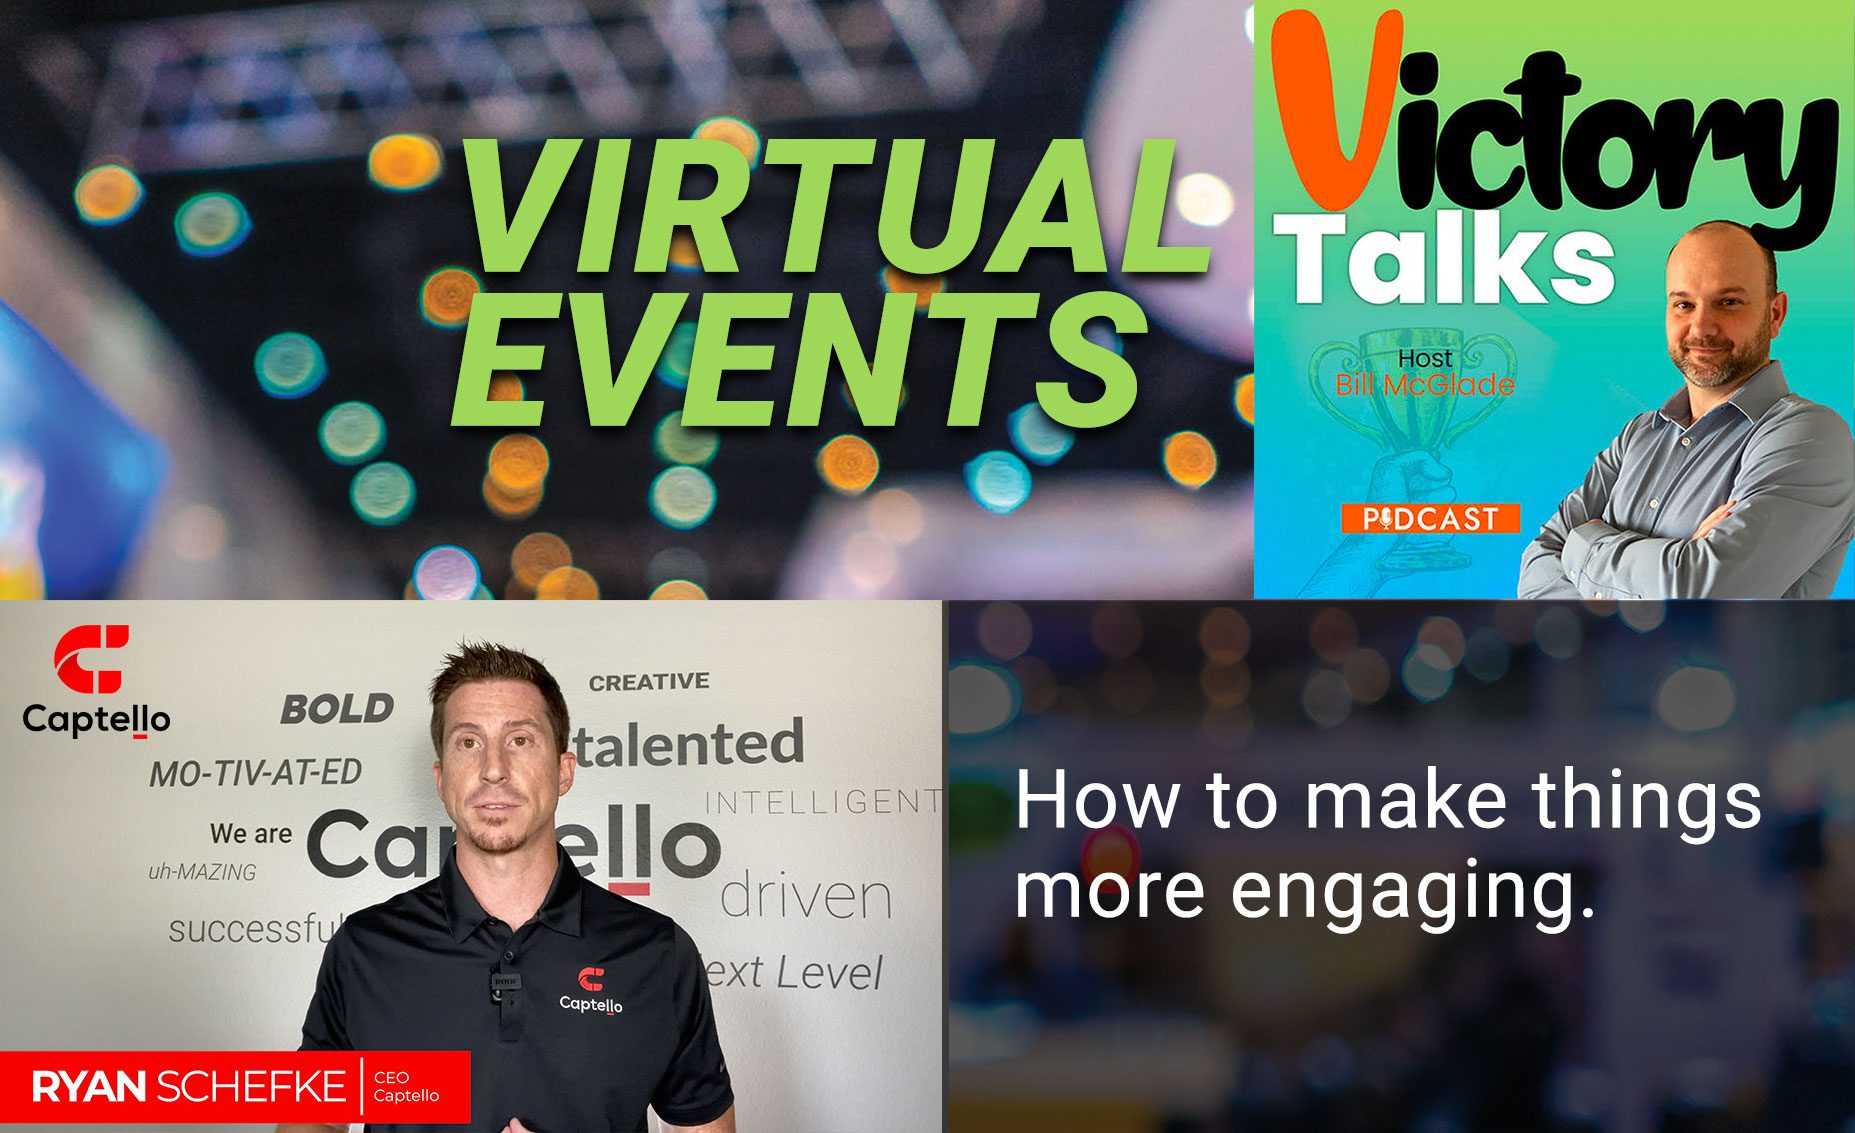 With many events going virtual, exhibiting has changed dramatically. Exhibitors need new ways to engage & educate prospects about products and solutions. Discover emerging tools that are taking virtual exhibiting & digital marketing to the next level.